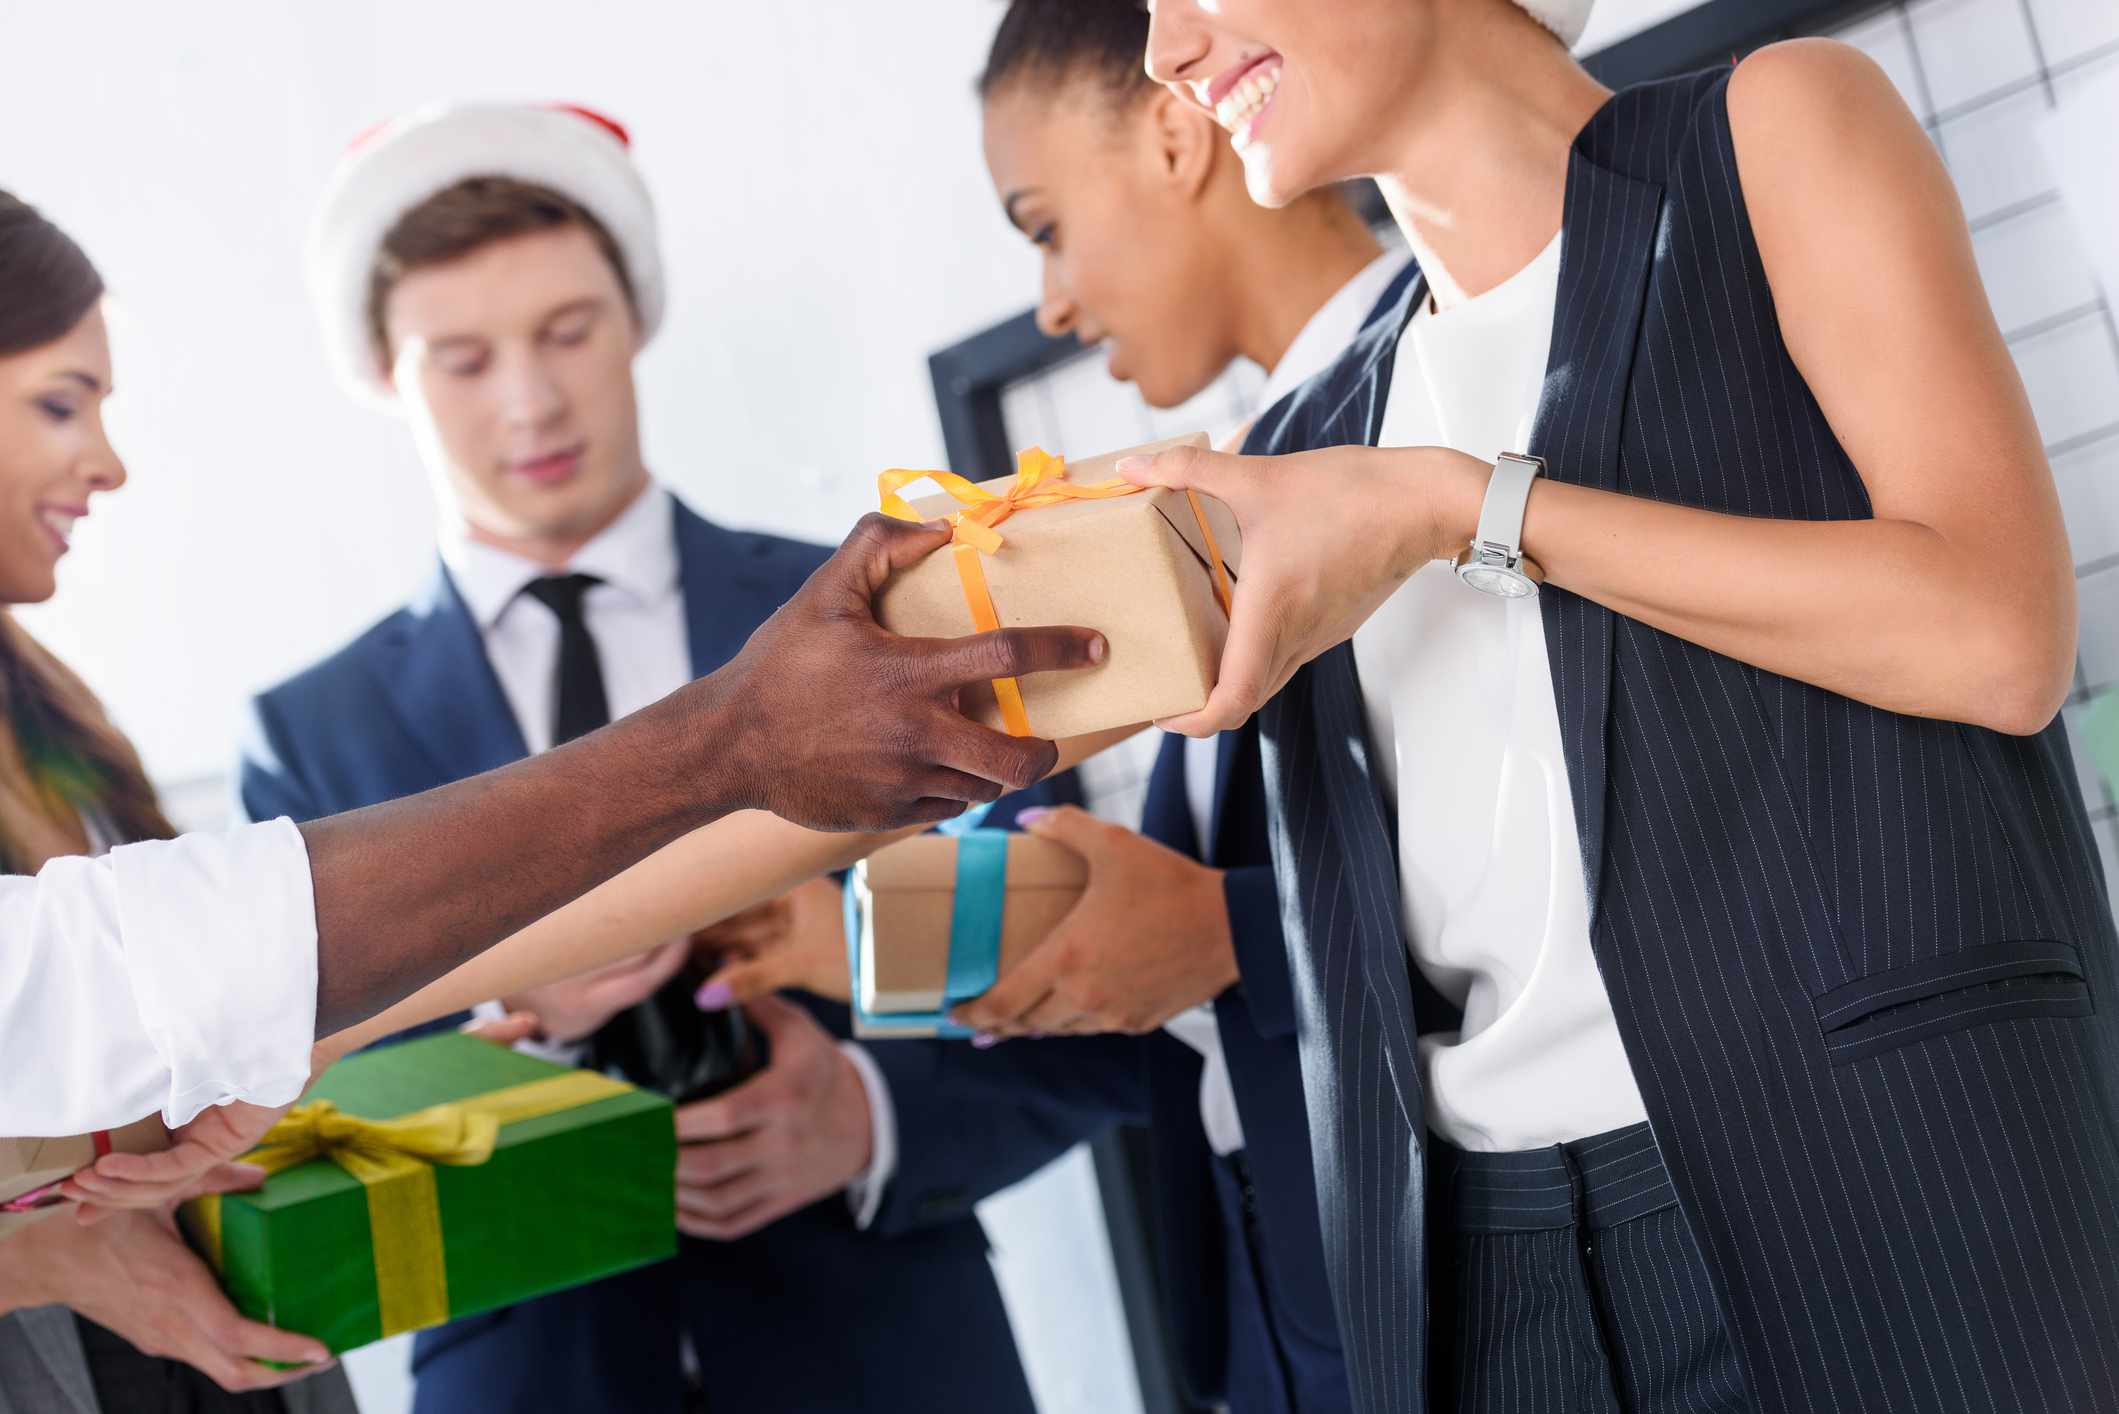 Business people exchanging gifts in office